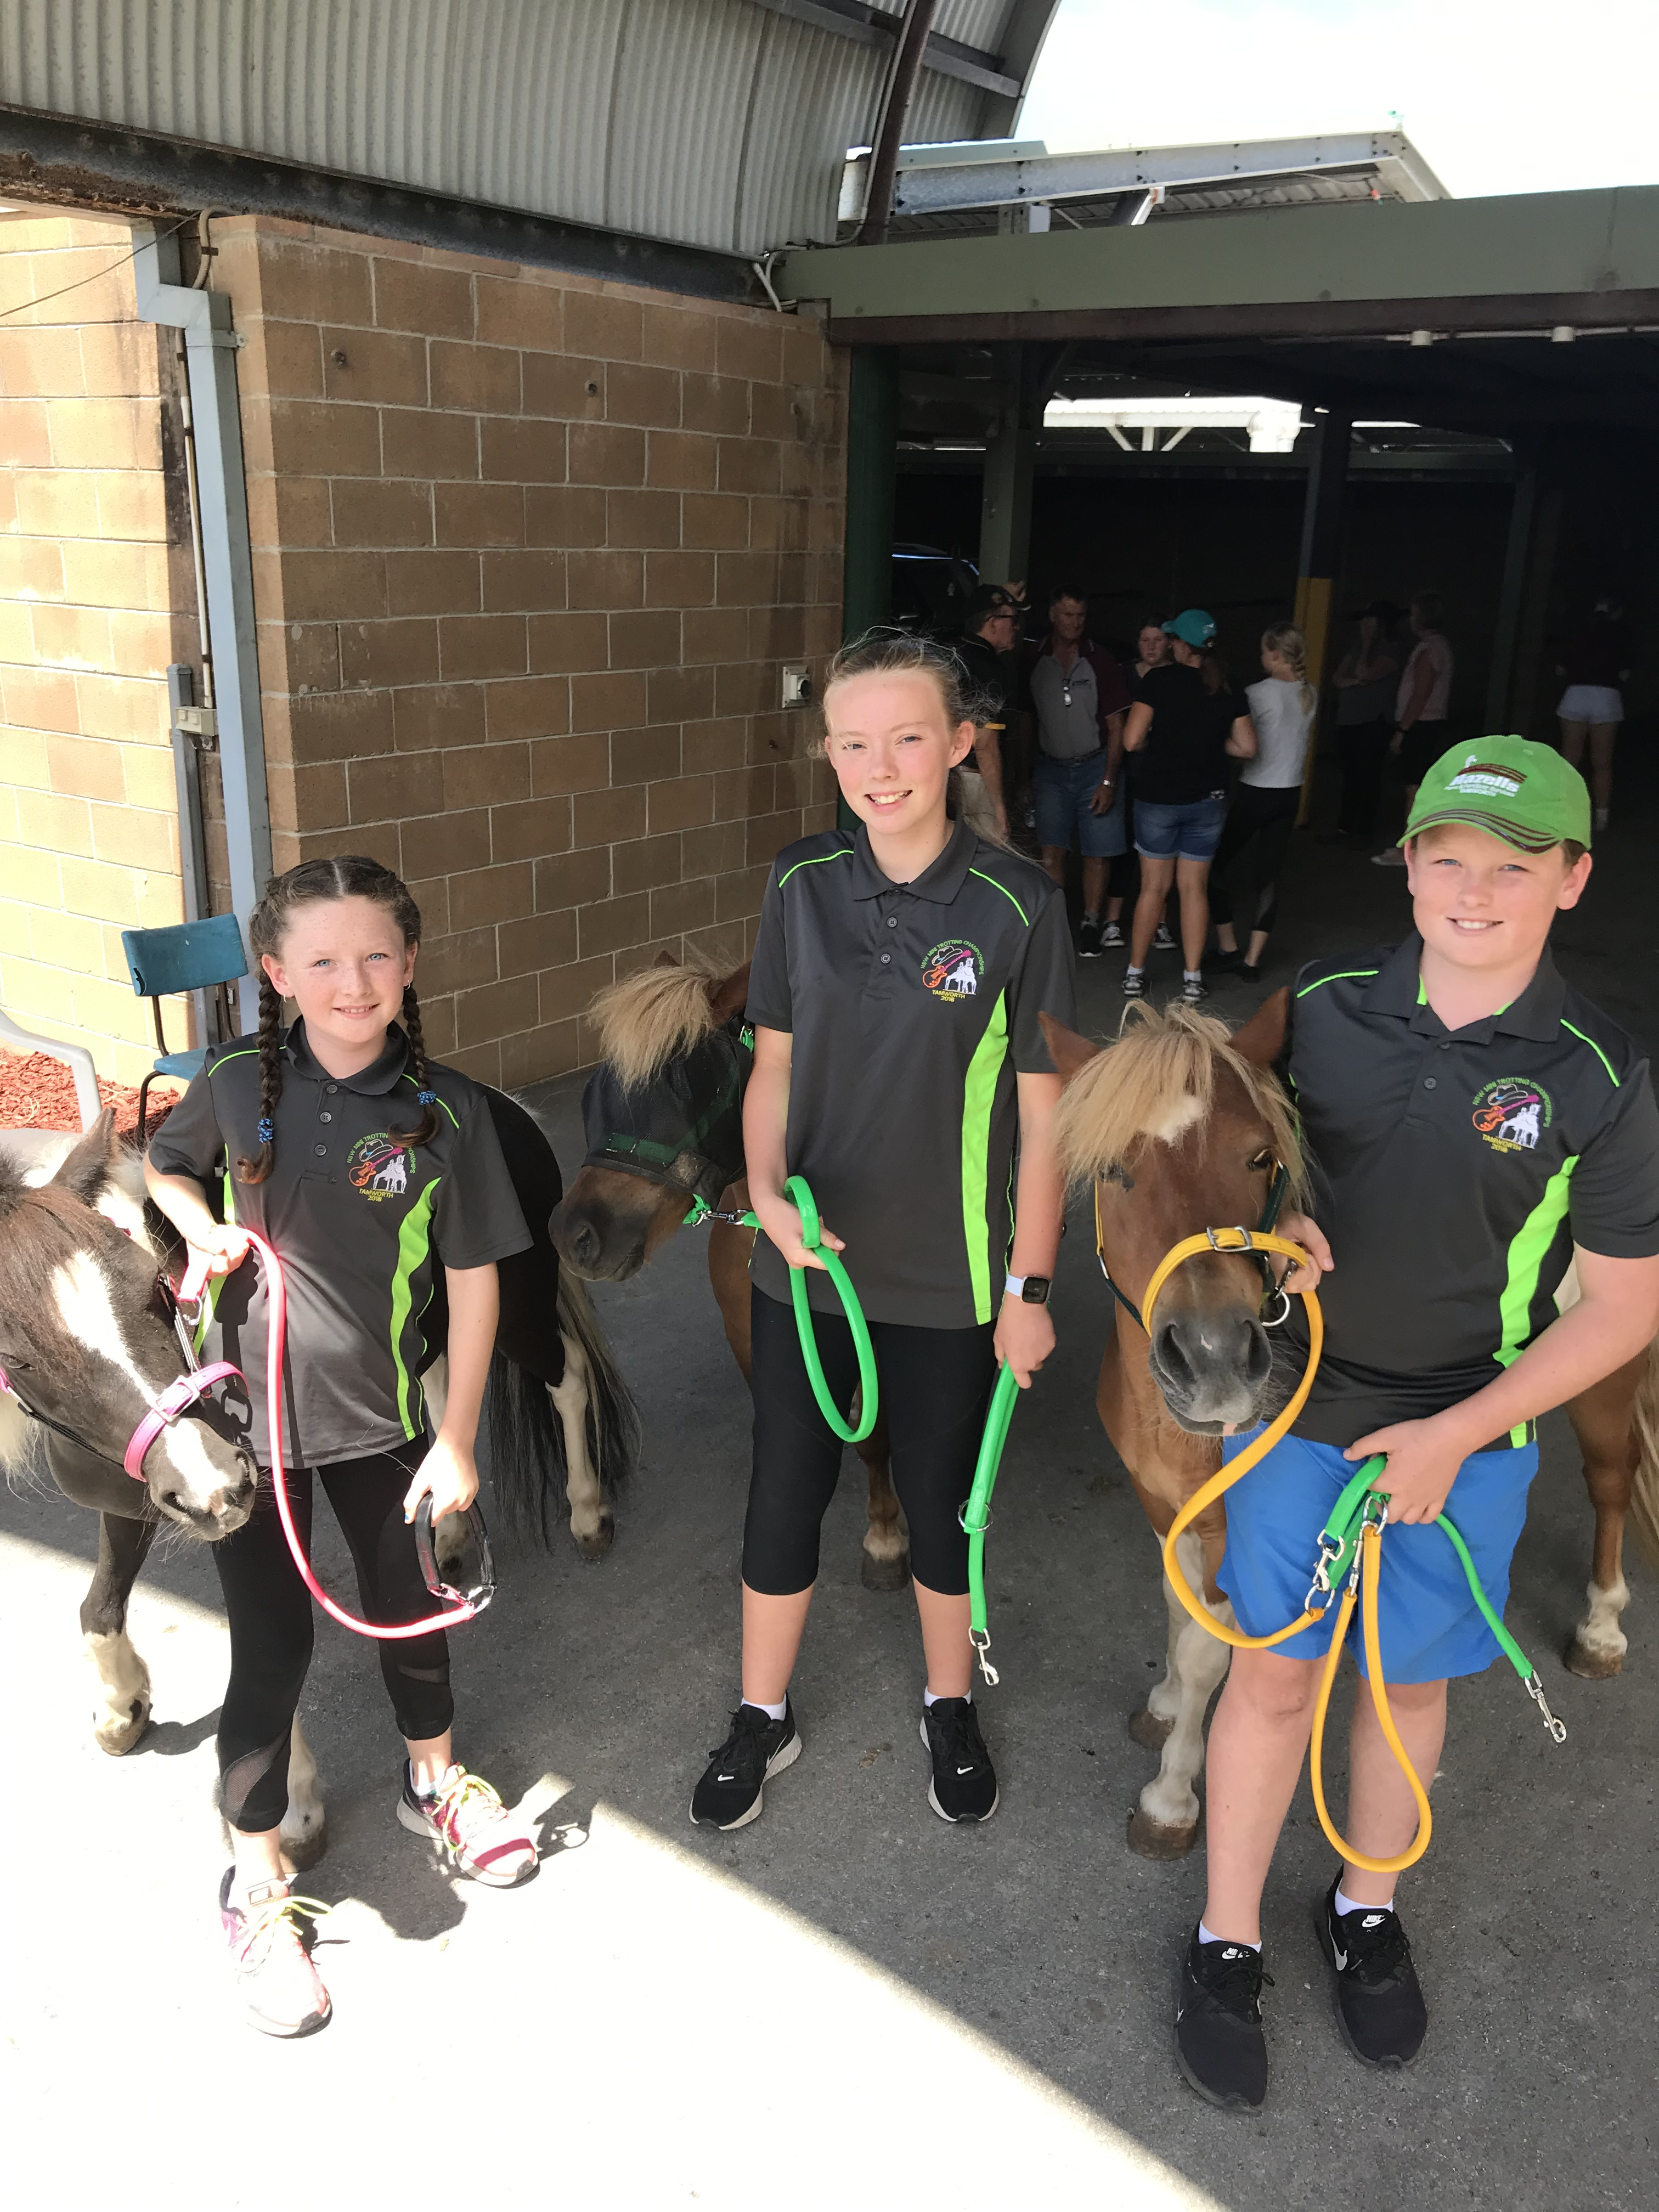 The Hunter Academy of Sport (HAS) harness racing education program kicked off last weekend with two days of seminars taking place at the HAS gym and Newcastle harness racing track.